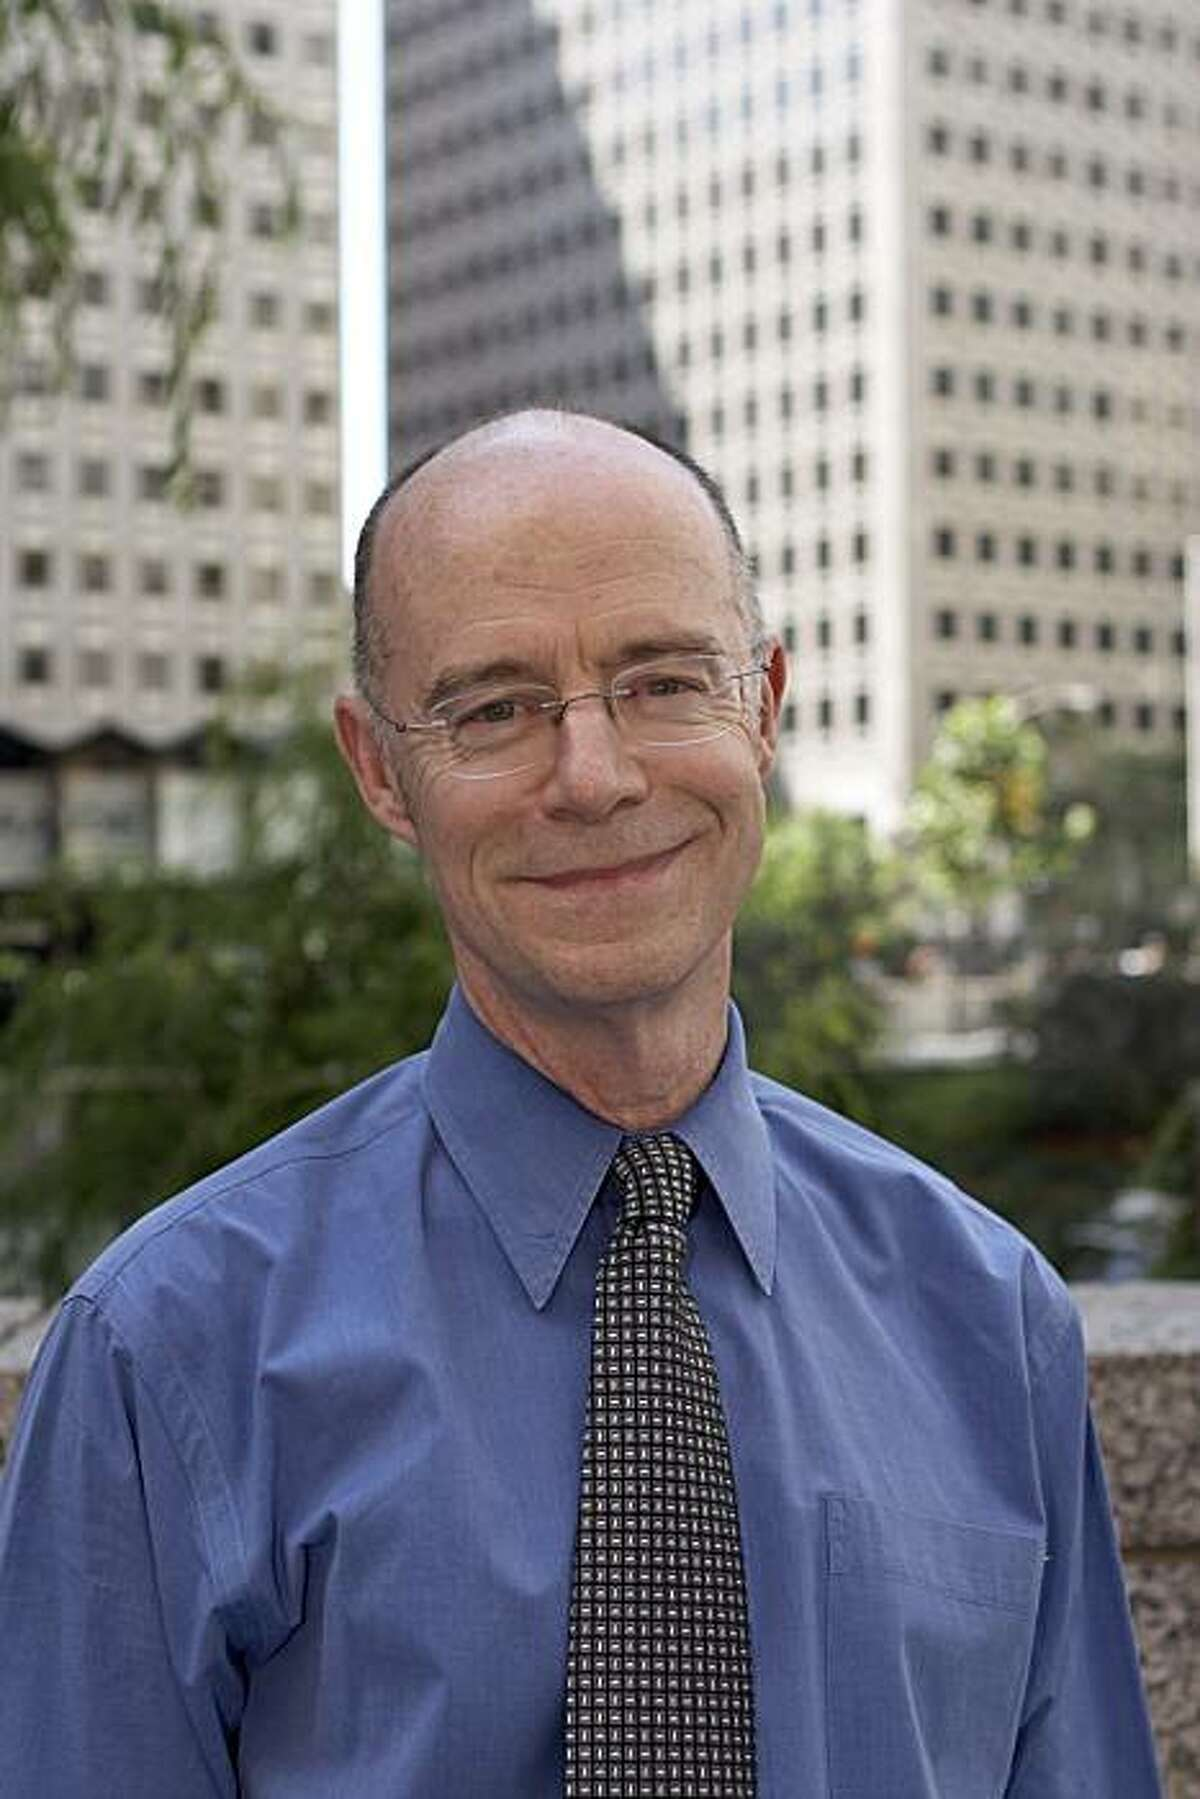 John R. Killacky is leaving the San Francisco Foundation for a position in the East.